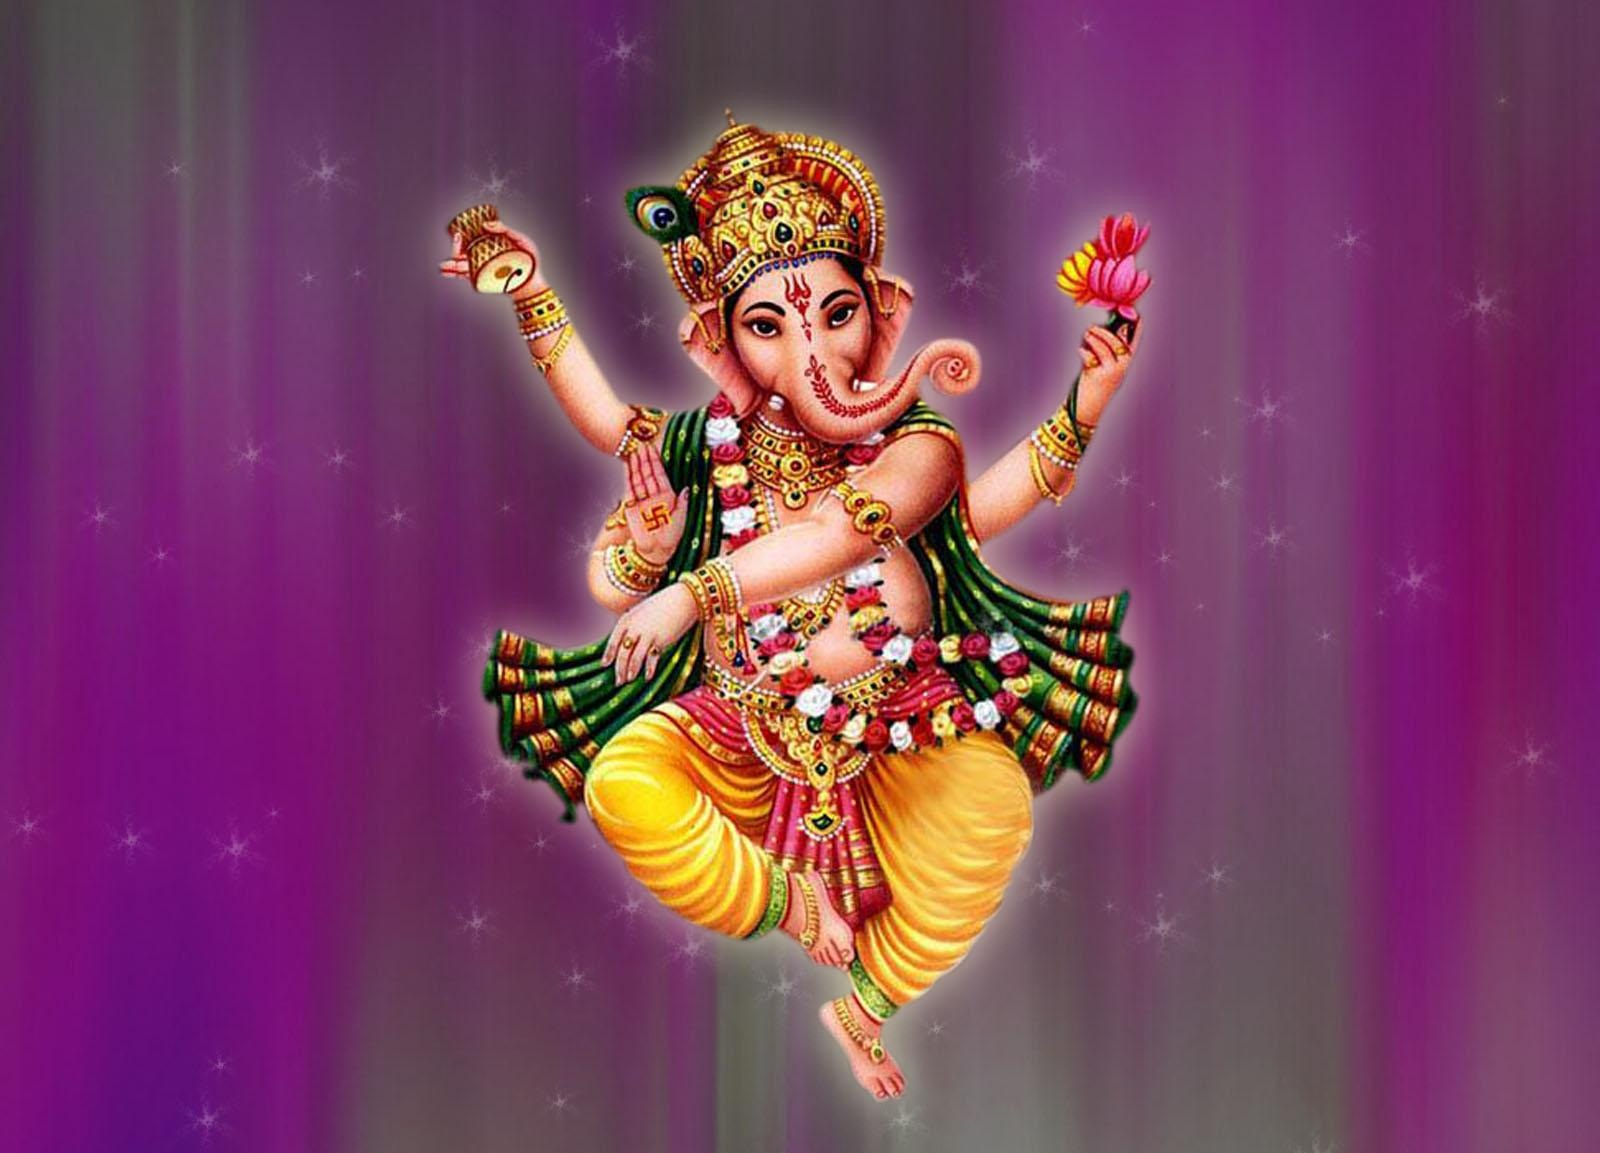 Hd Wallpaper Car And Bike Download God Ganesh Lord Ganesh Bagvan Wide Screen Wallpapers Of